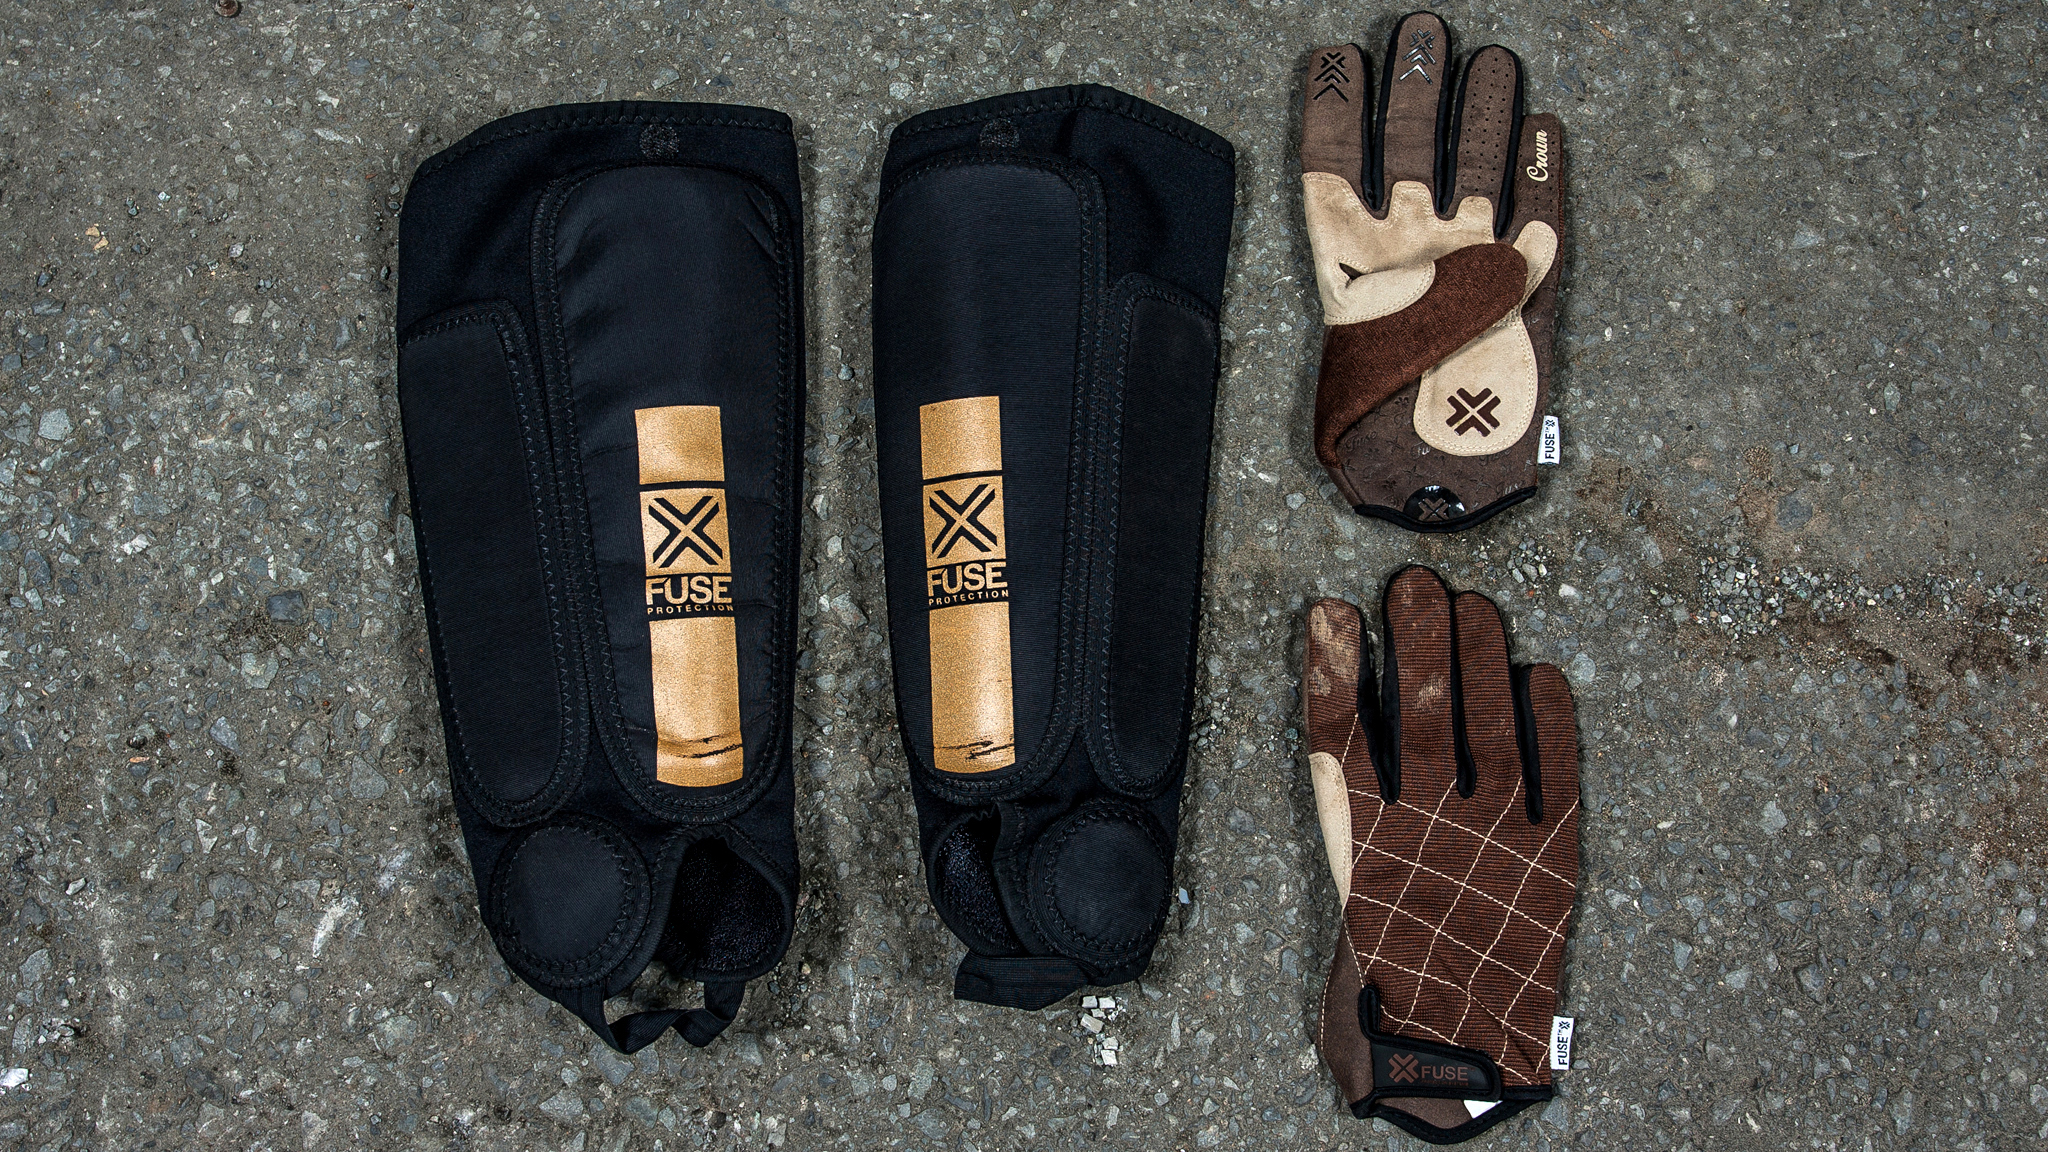 Shin guards and gloves